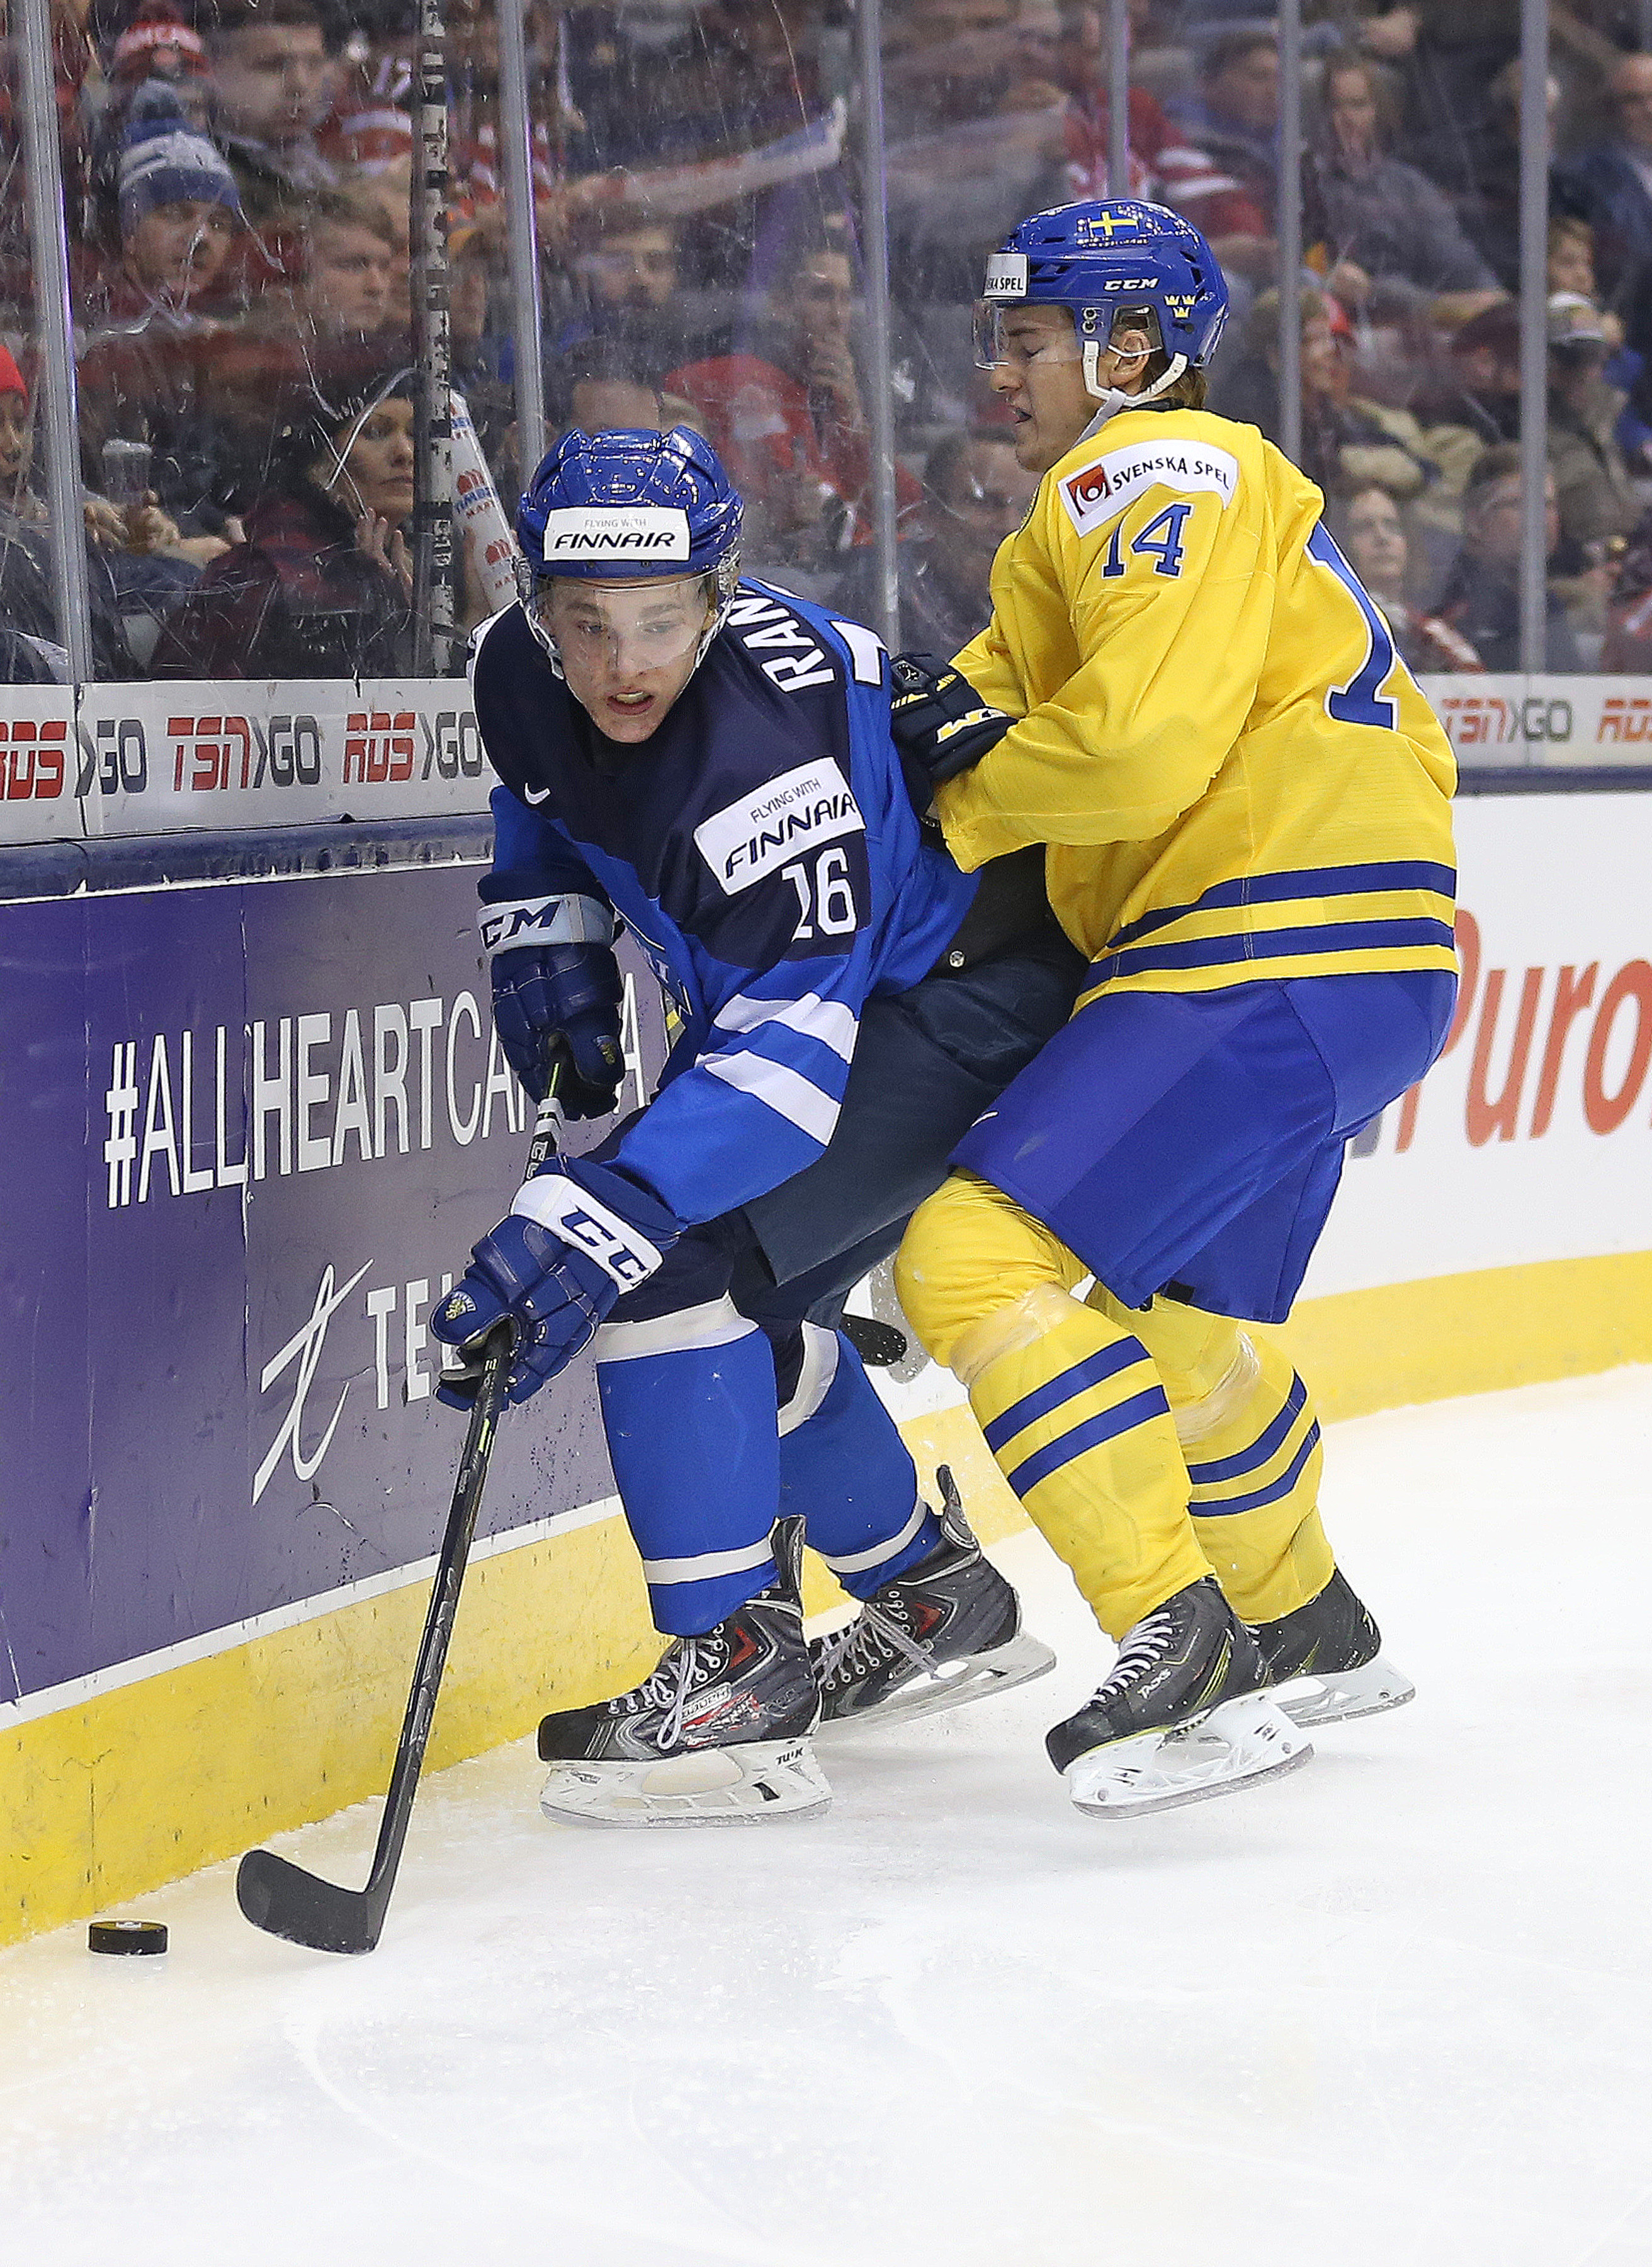 Rantanen could be a great pick for the Panthers at 11.